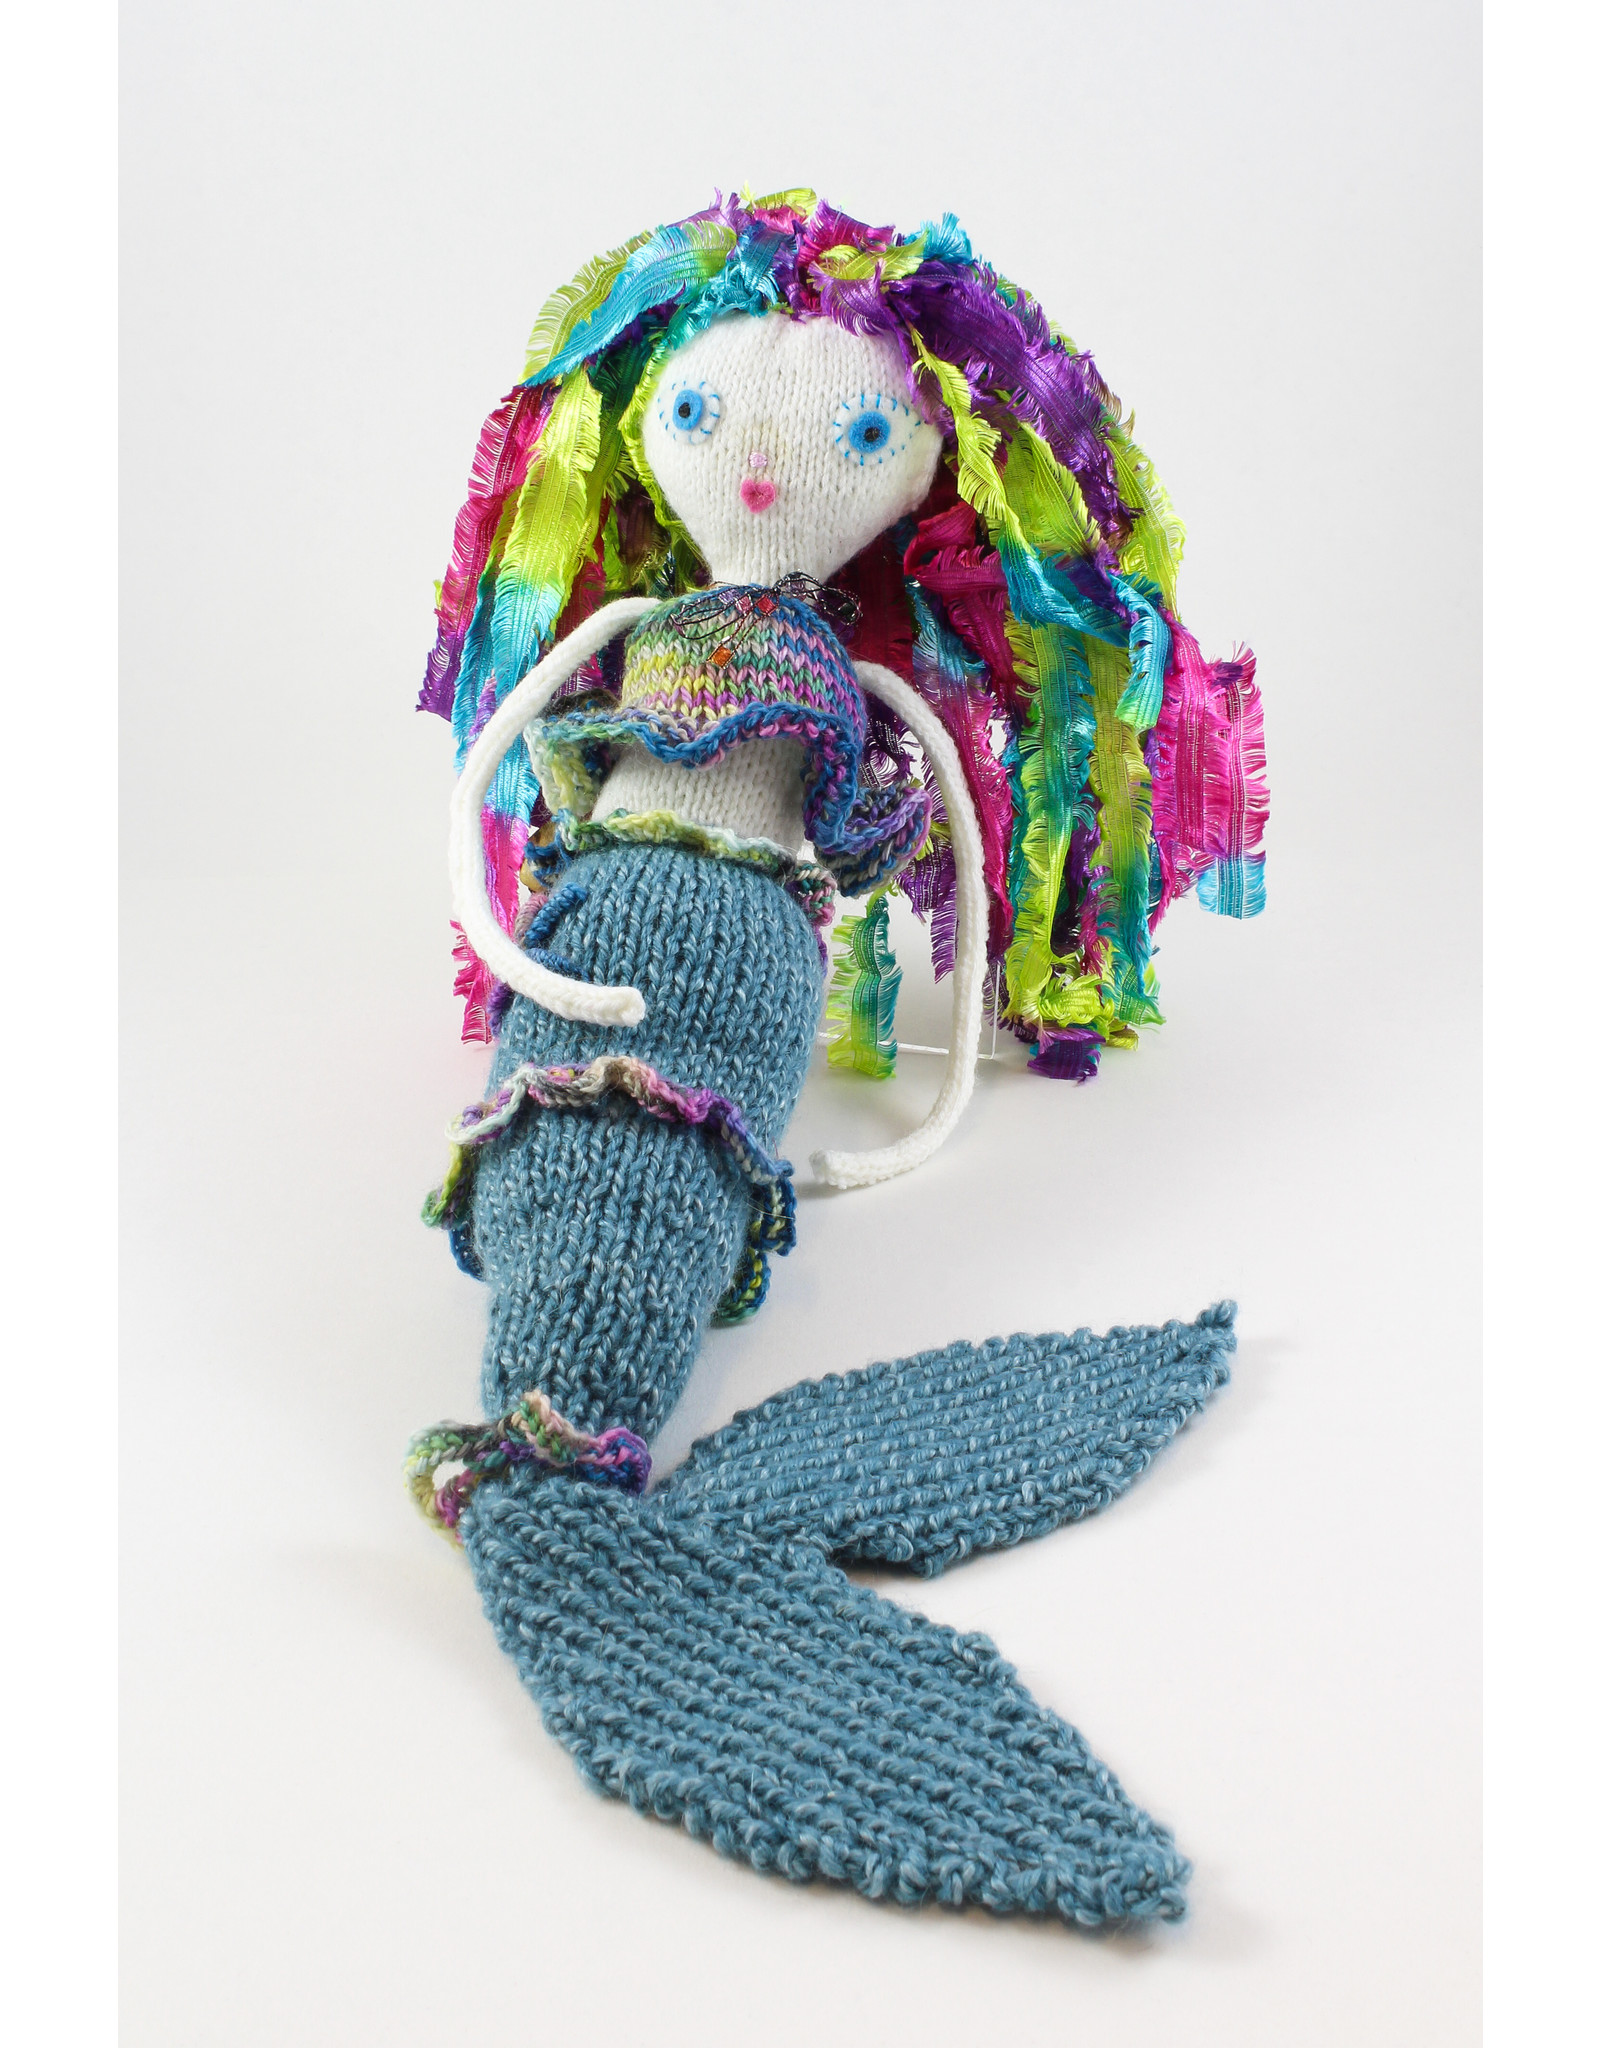 Molly Ritchie Marina the Mermaid by Molly Ritchie